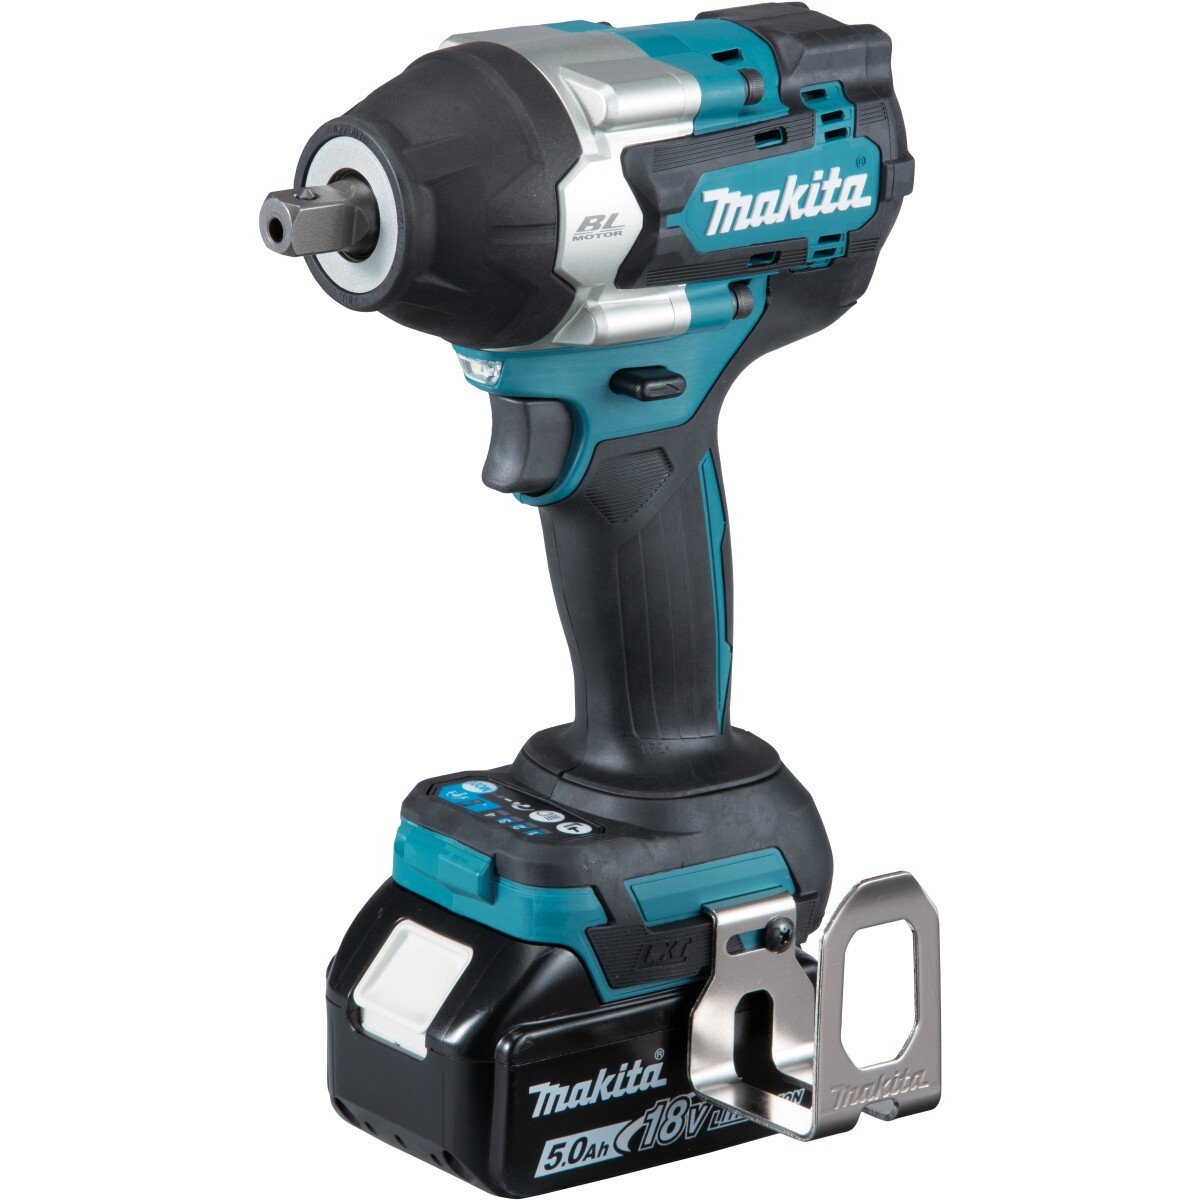 "Makita DTW701RTJ 18v 1/2"" Square Drive Impact Wrench 700Nm with 2 Batteries in Case"